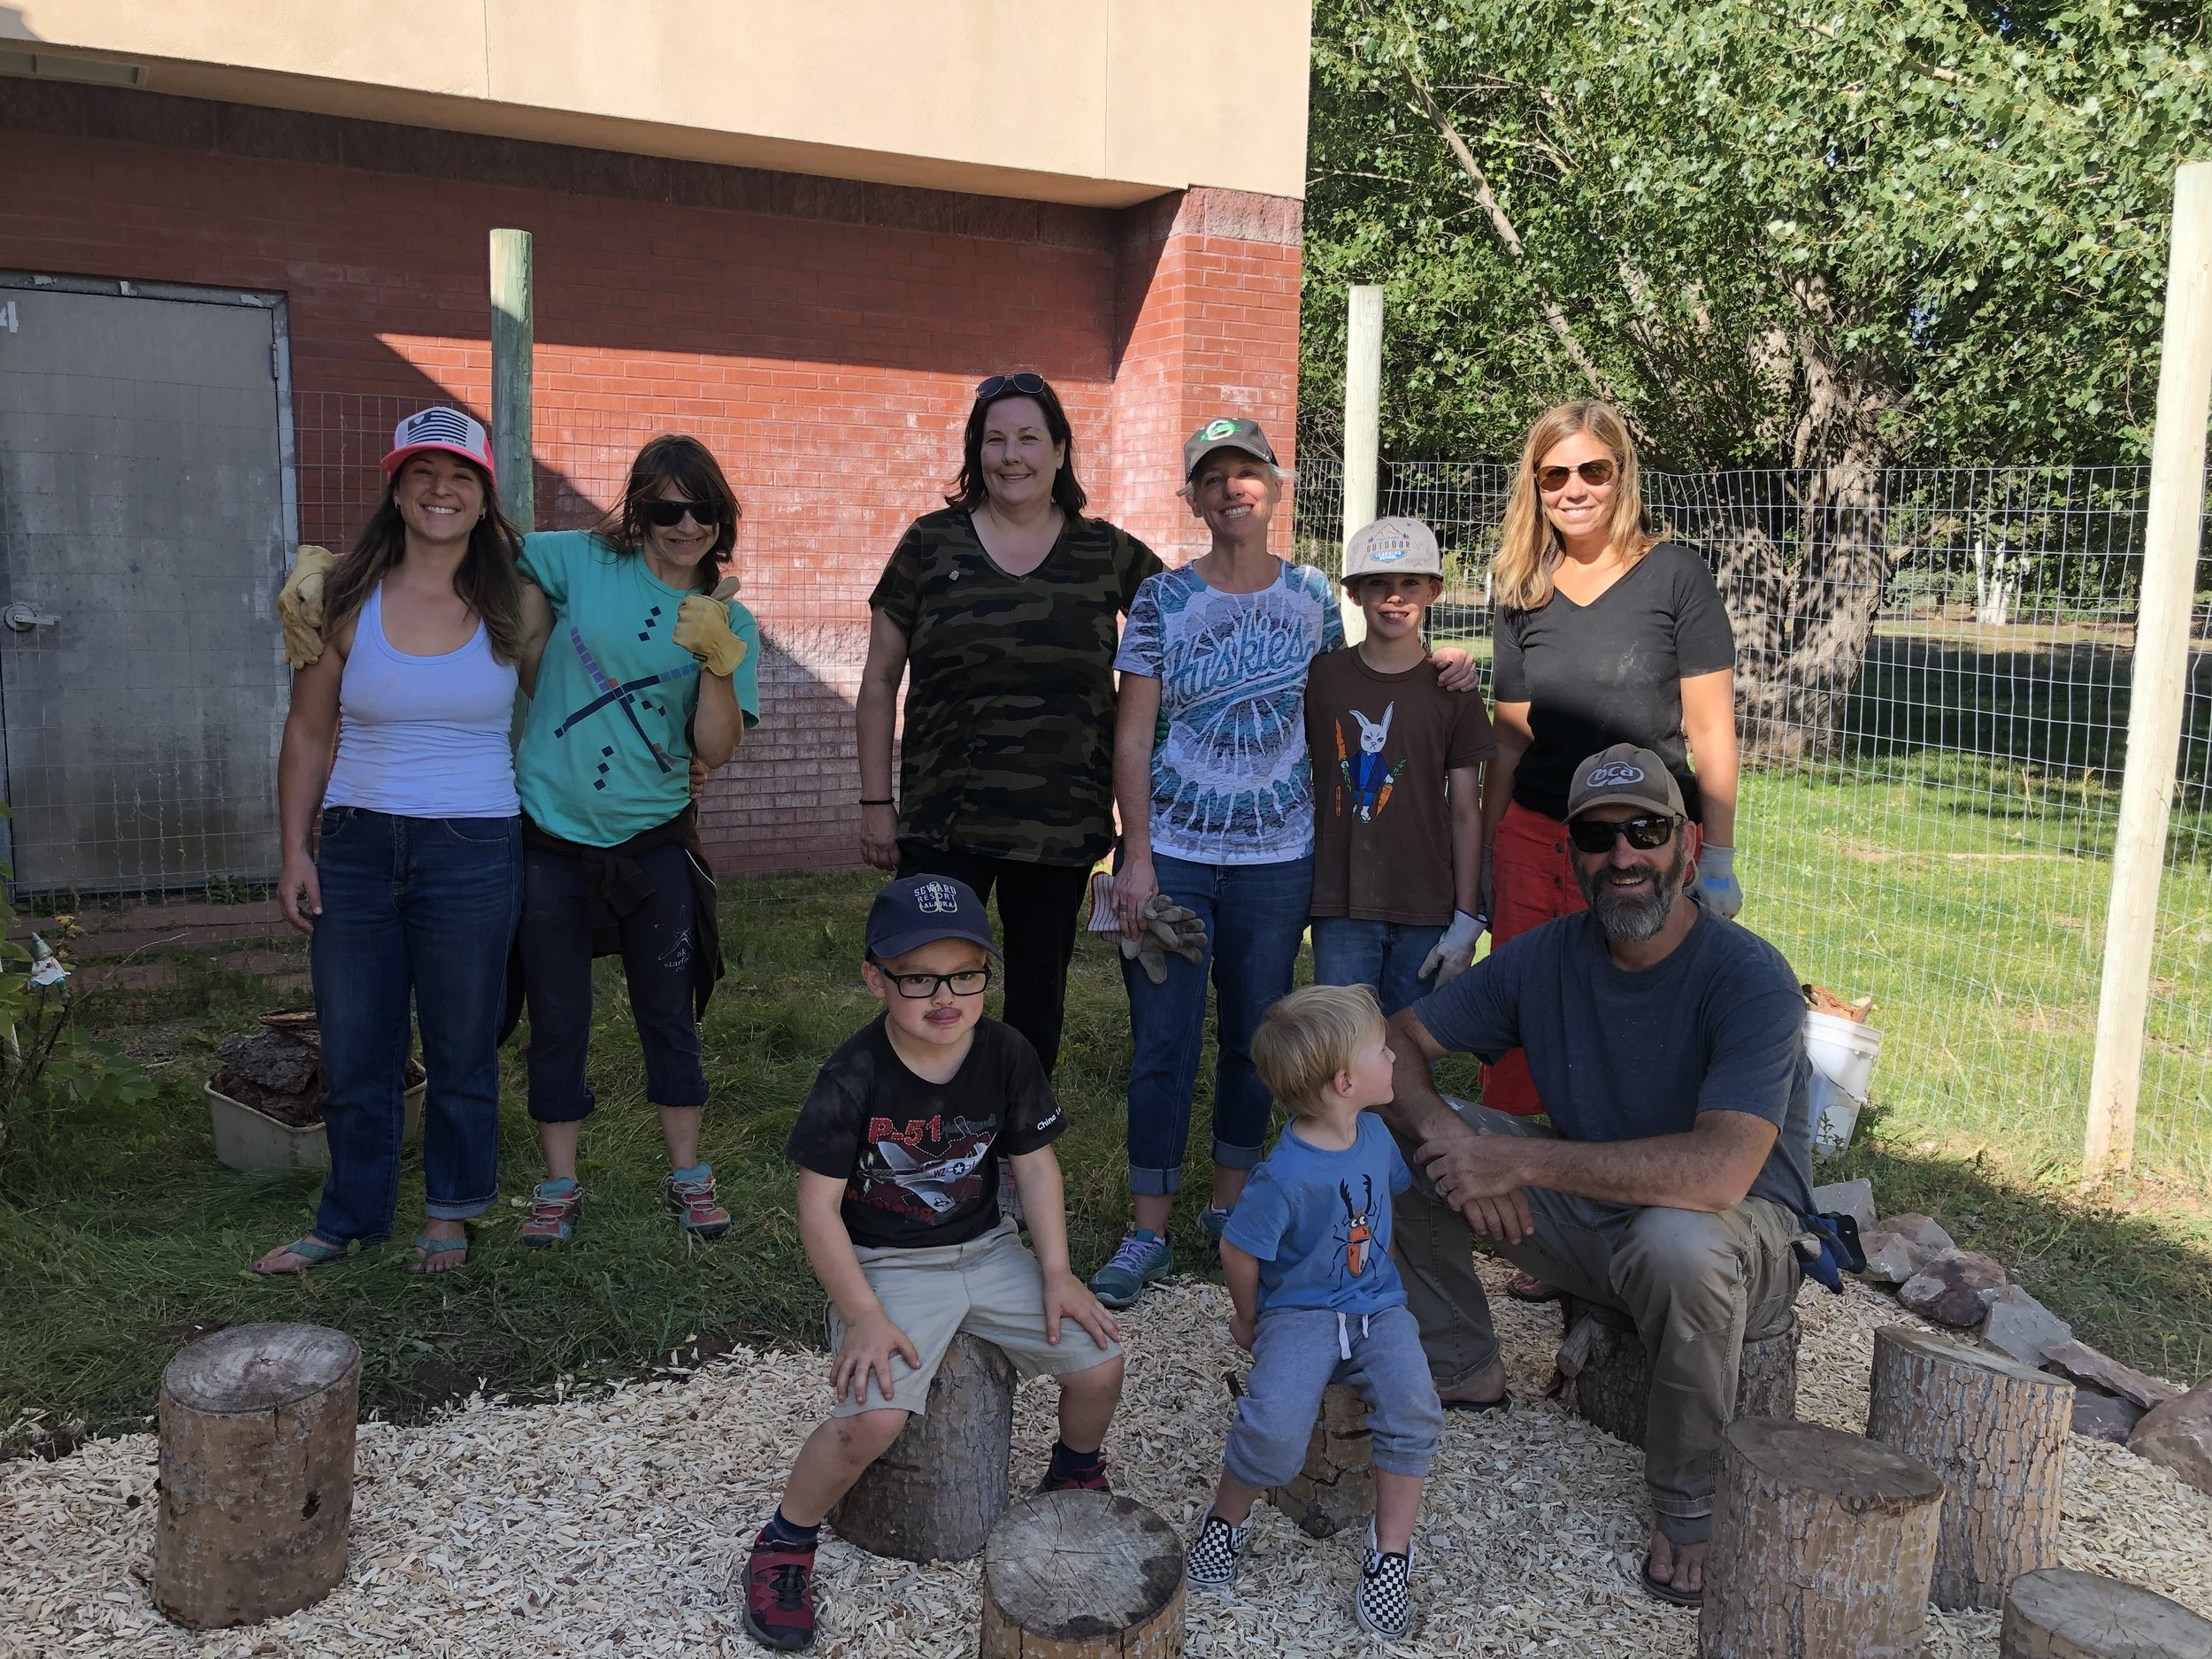 Our parent volunteers and kiddos pause to document our efforts cleaning up the Outdoor Classroom! Mulch, decorations, white board renovation, and beautiful stumps were added to enhance our students' outdoor learning experiences! Thanks all! (though not all who helped are pictured above)